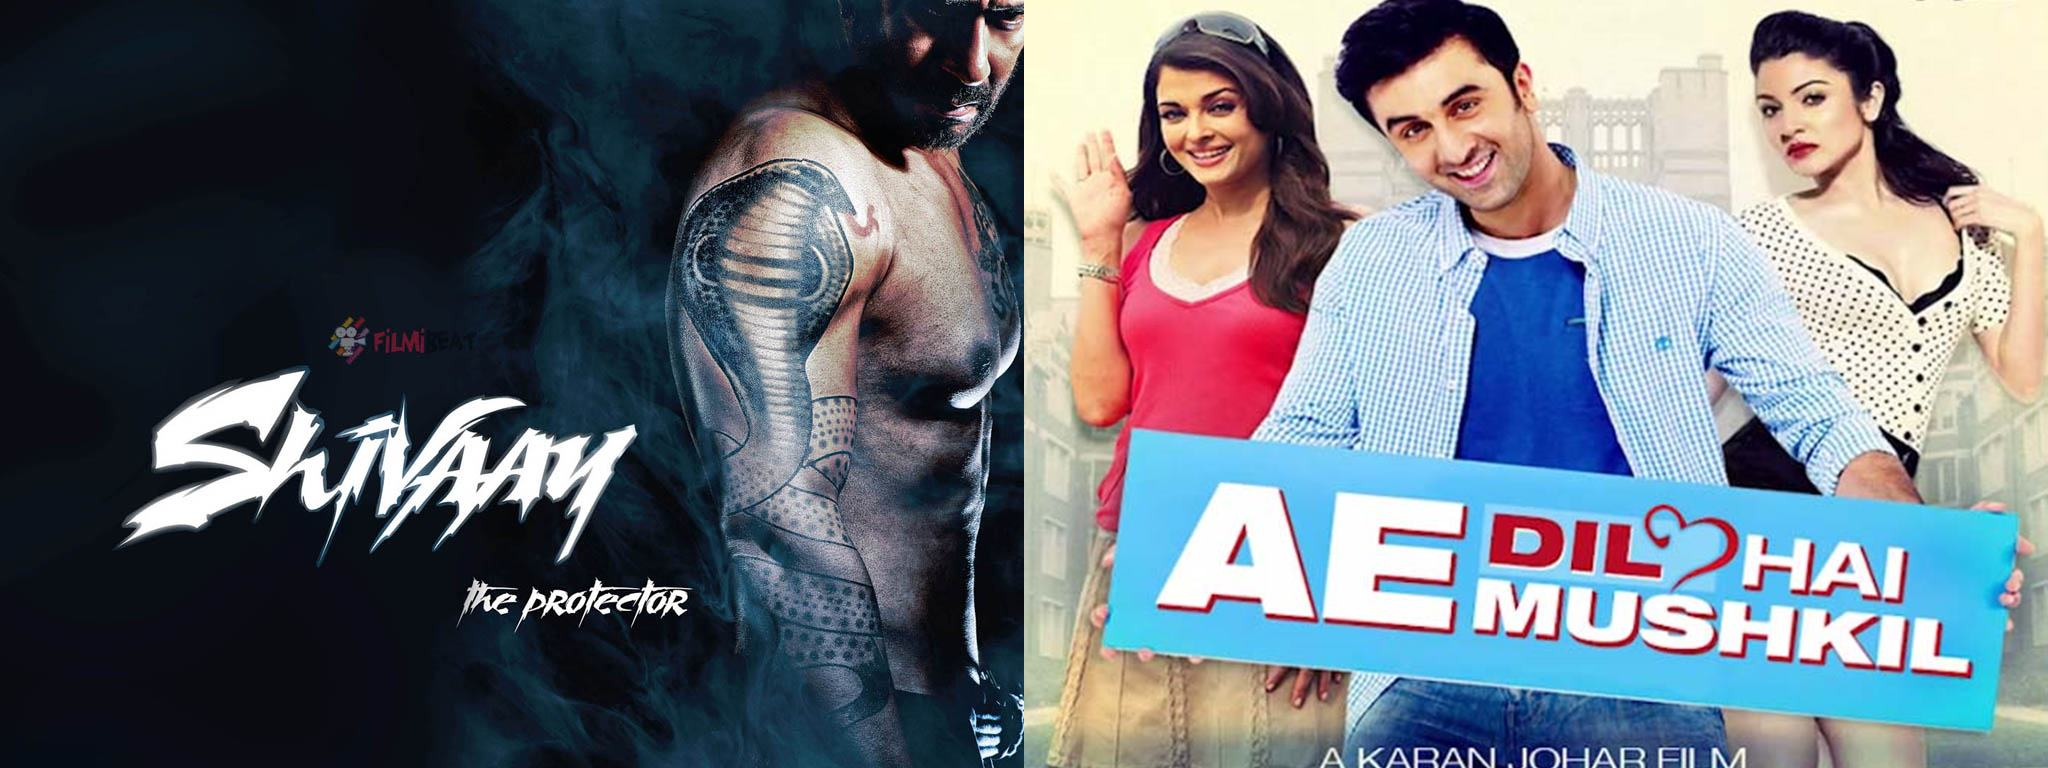 10 Biggest Bollywood Clashes in 2015-2016-Shivaay vs Ae Dil Hai Mushkil